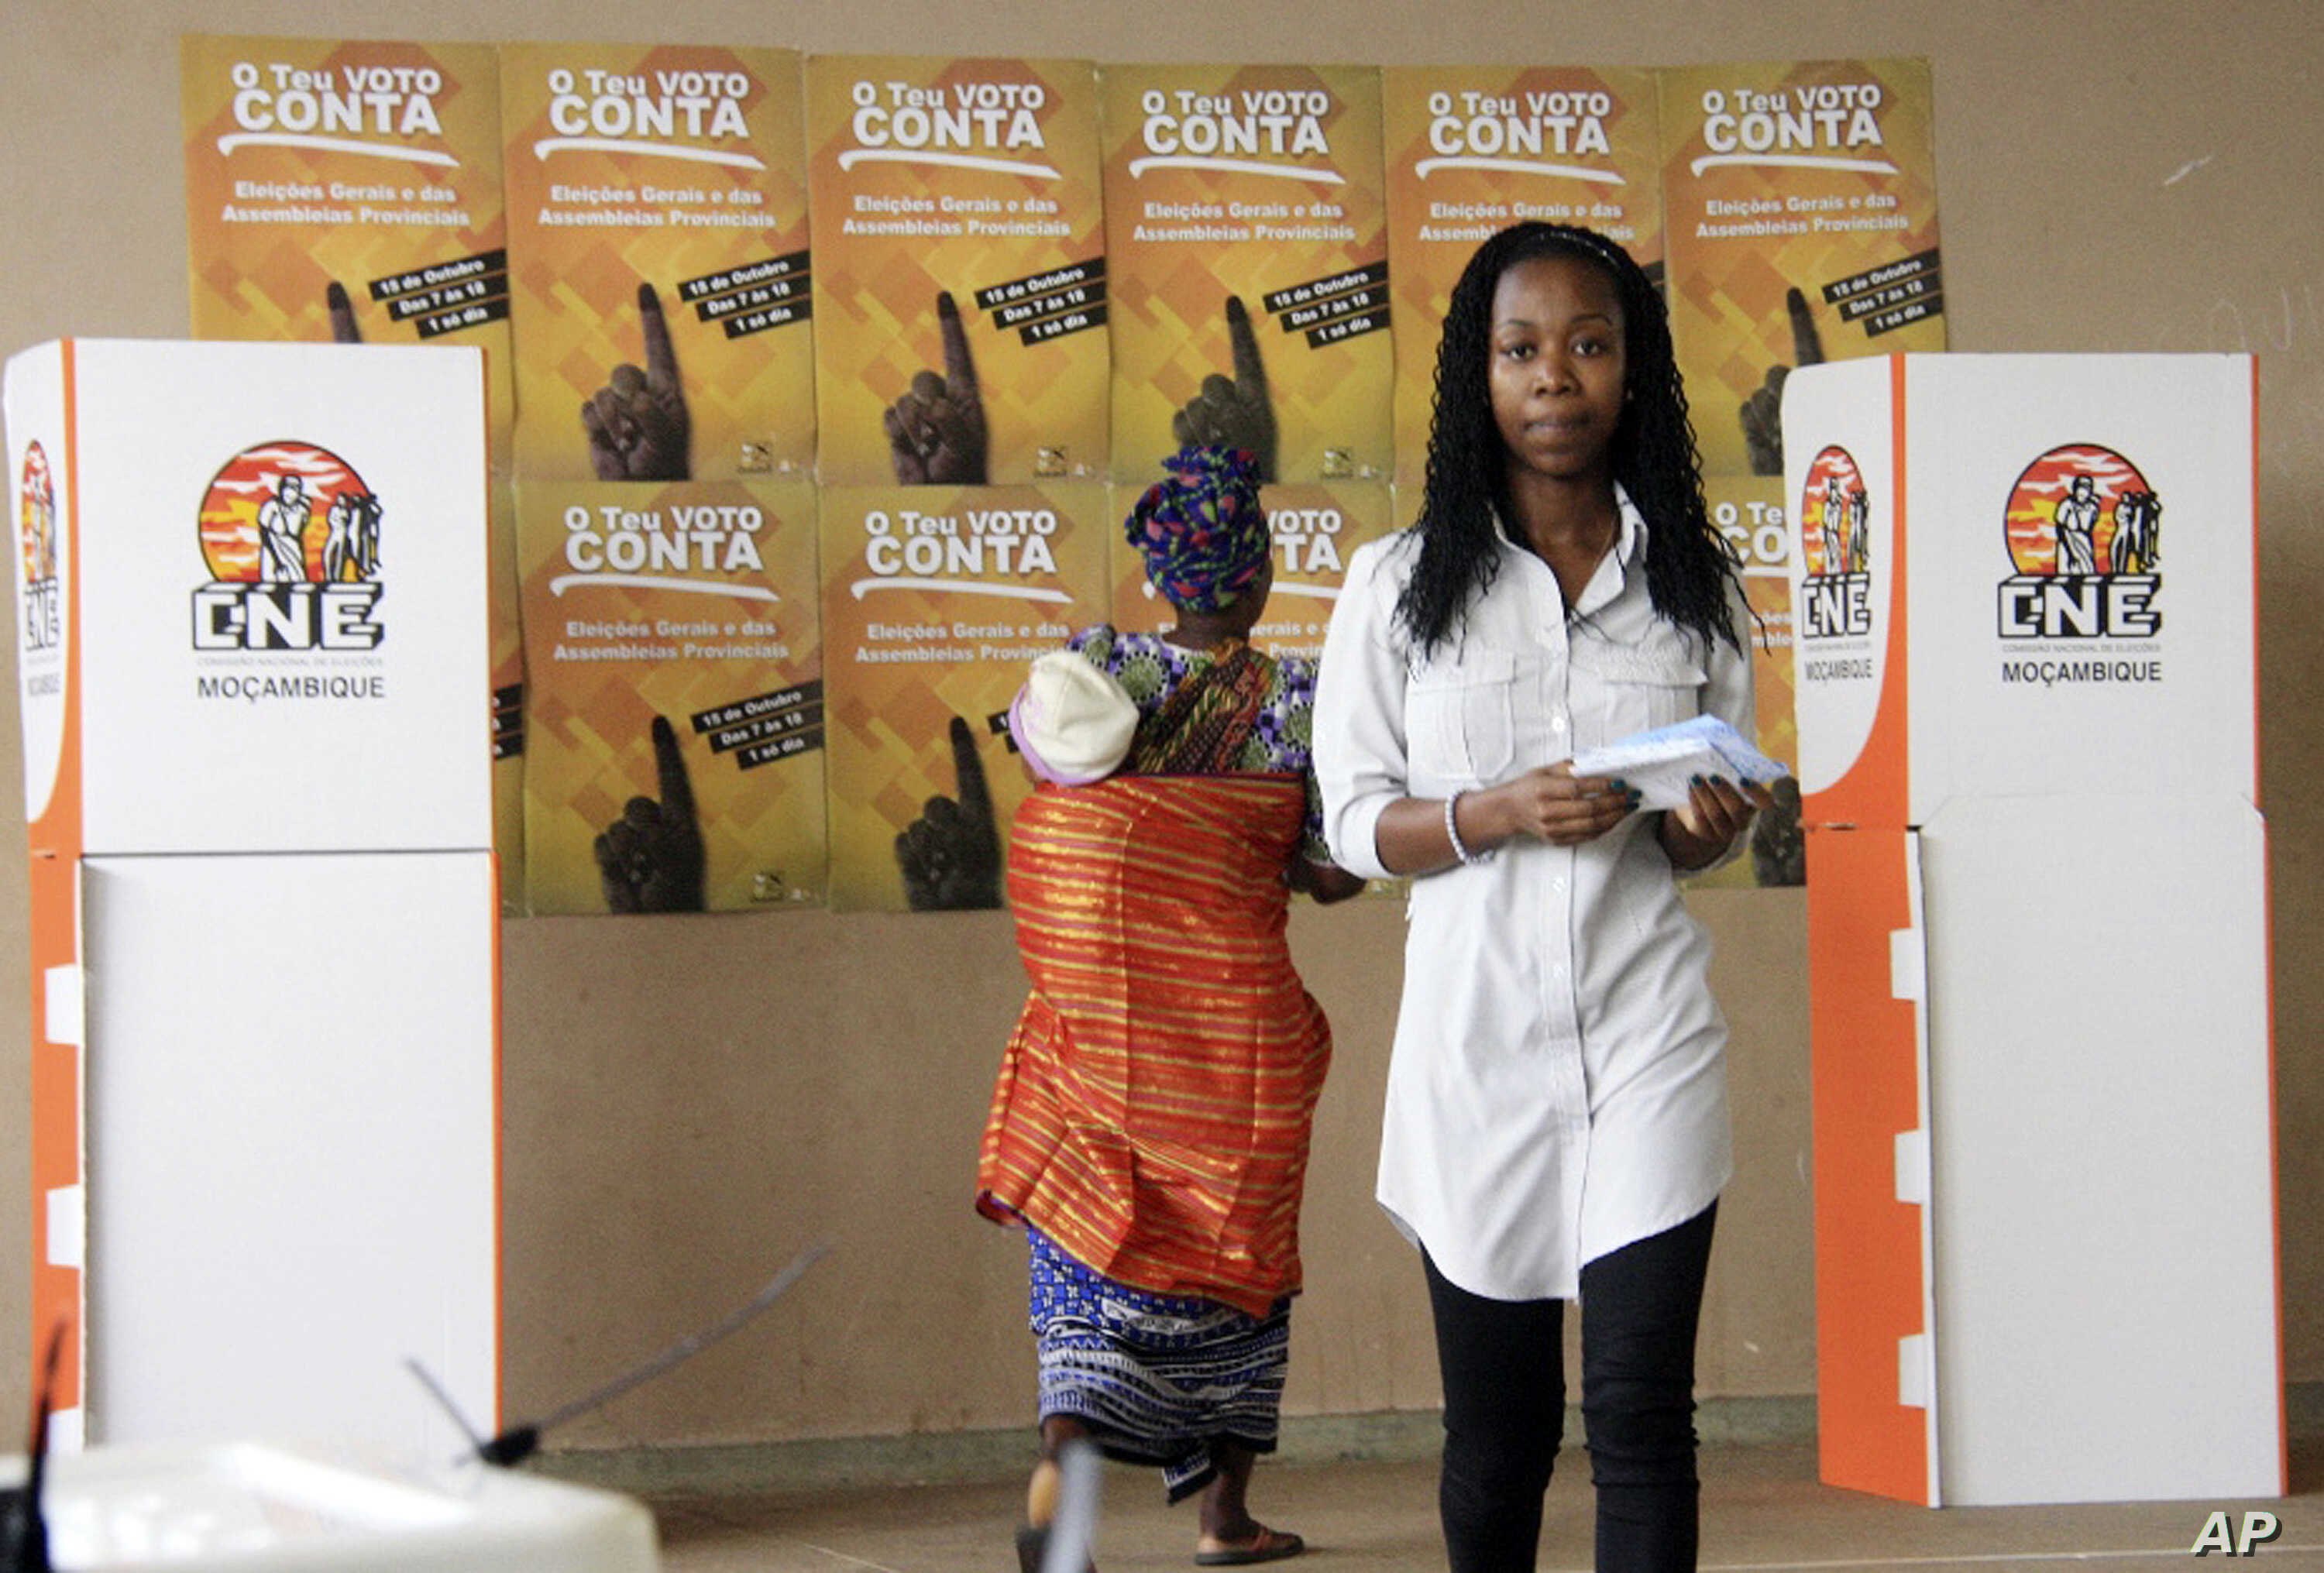 Voters prepare for casting their votes at a polling station as the country goes to the polls in Maputo, Mozambique, Oct. 15, 2014.